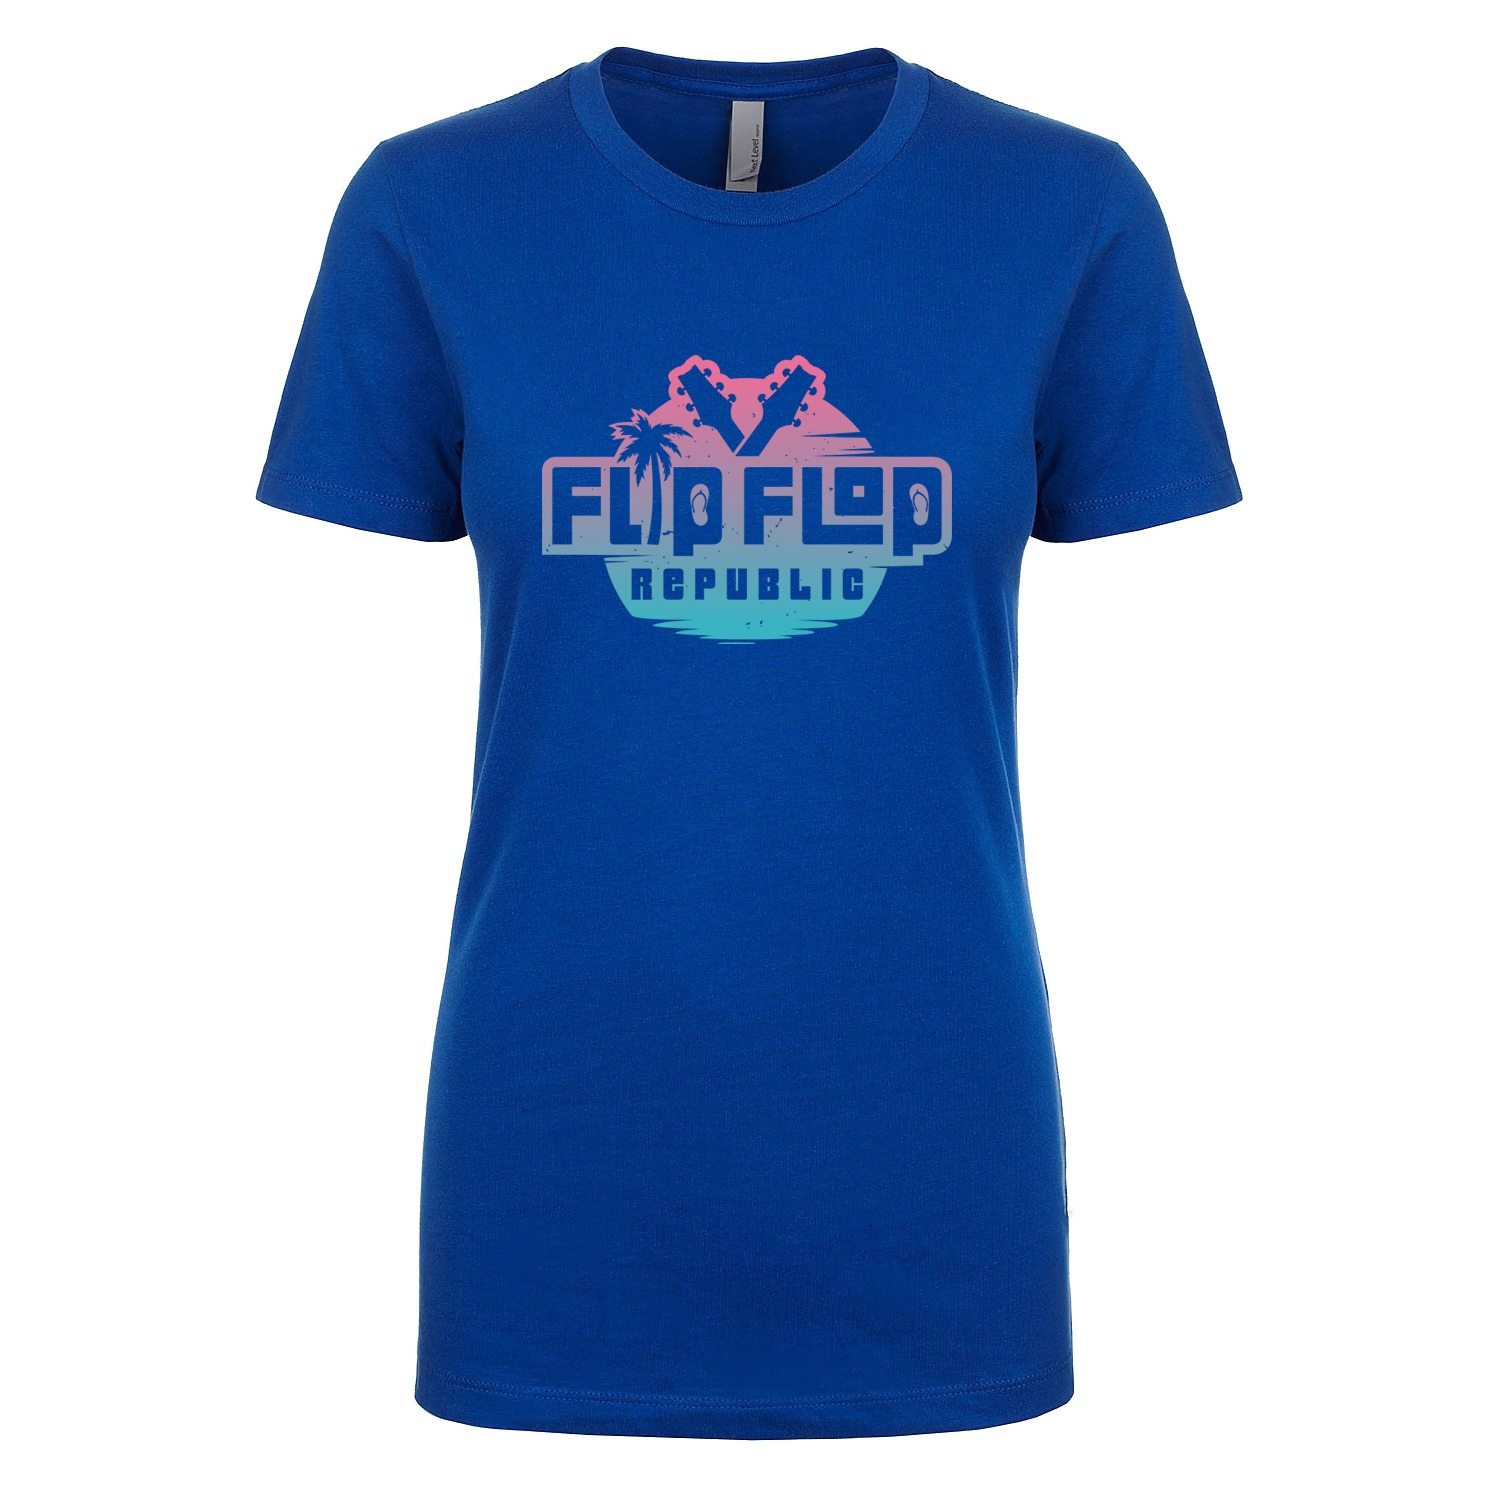 Flip Flop Republic Miami Vice Women's Fitted Tee, The Troprock Shop